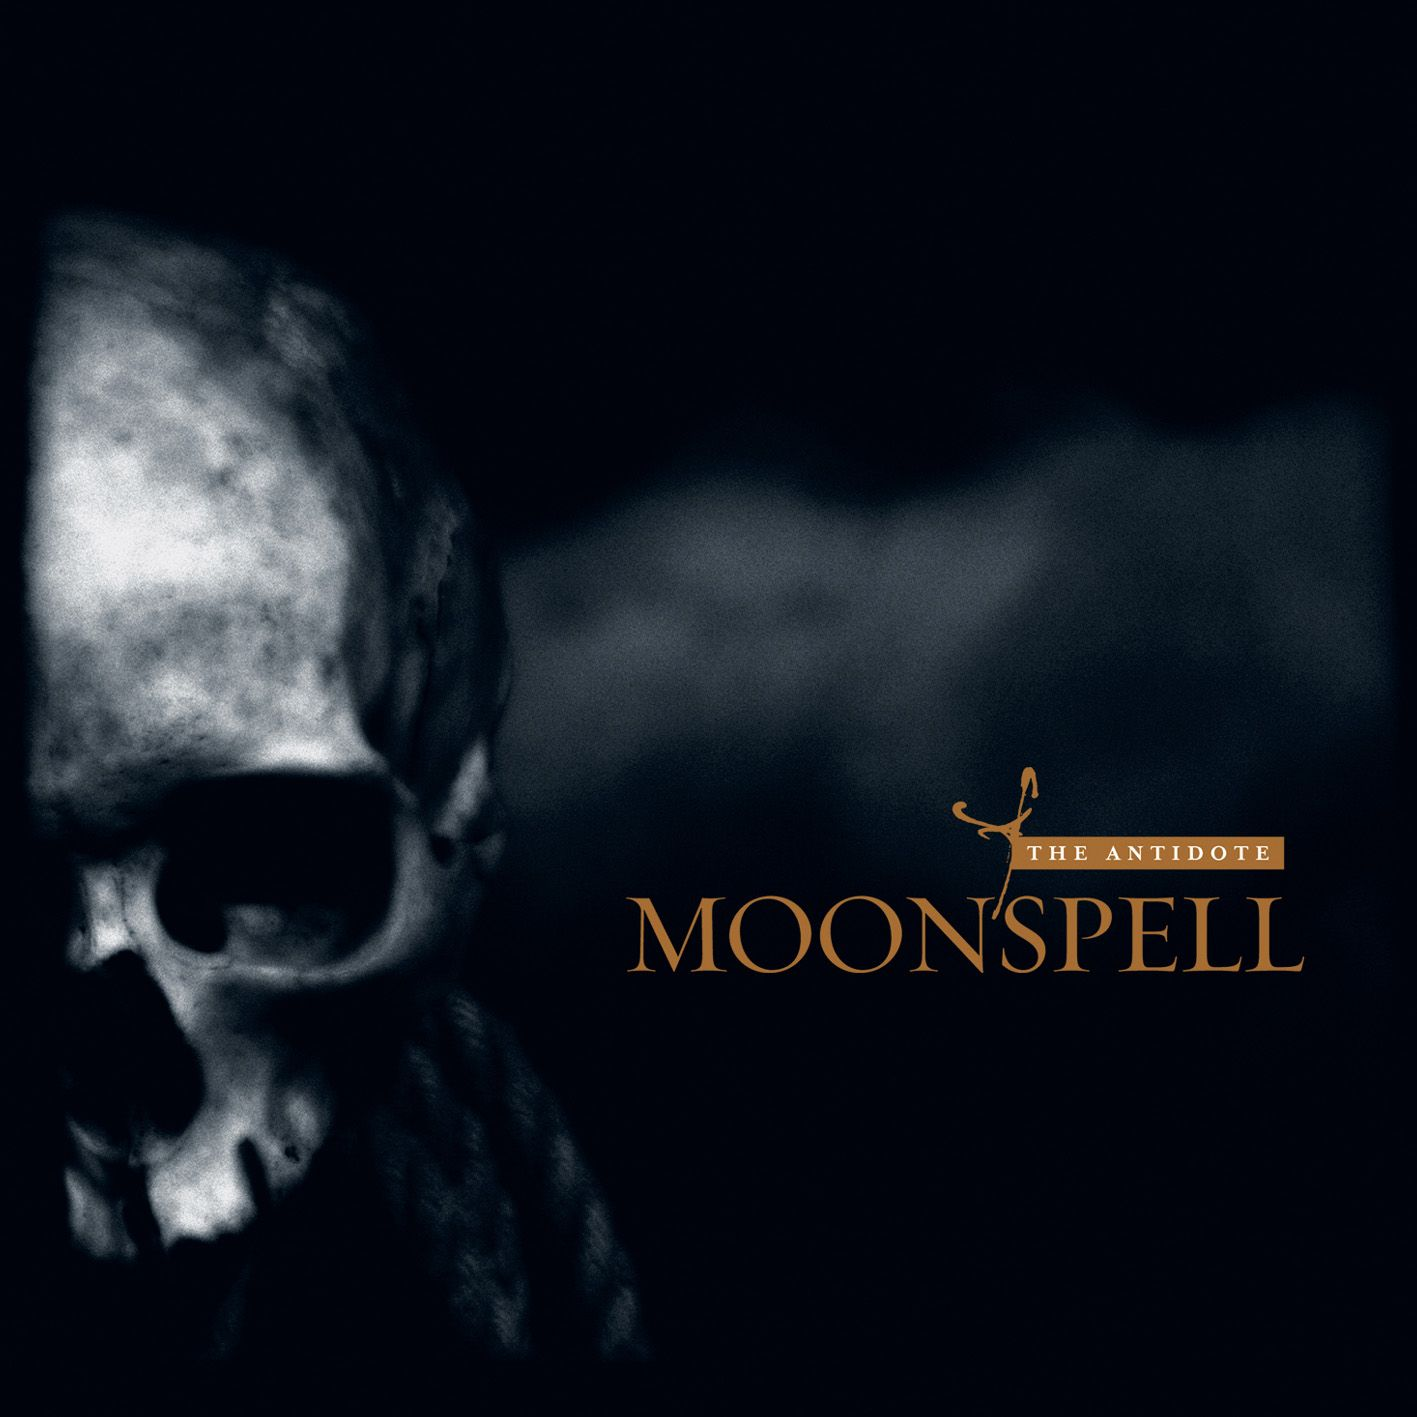 Moonspell - The Antidote album cover